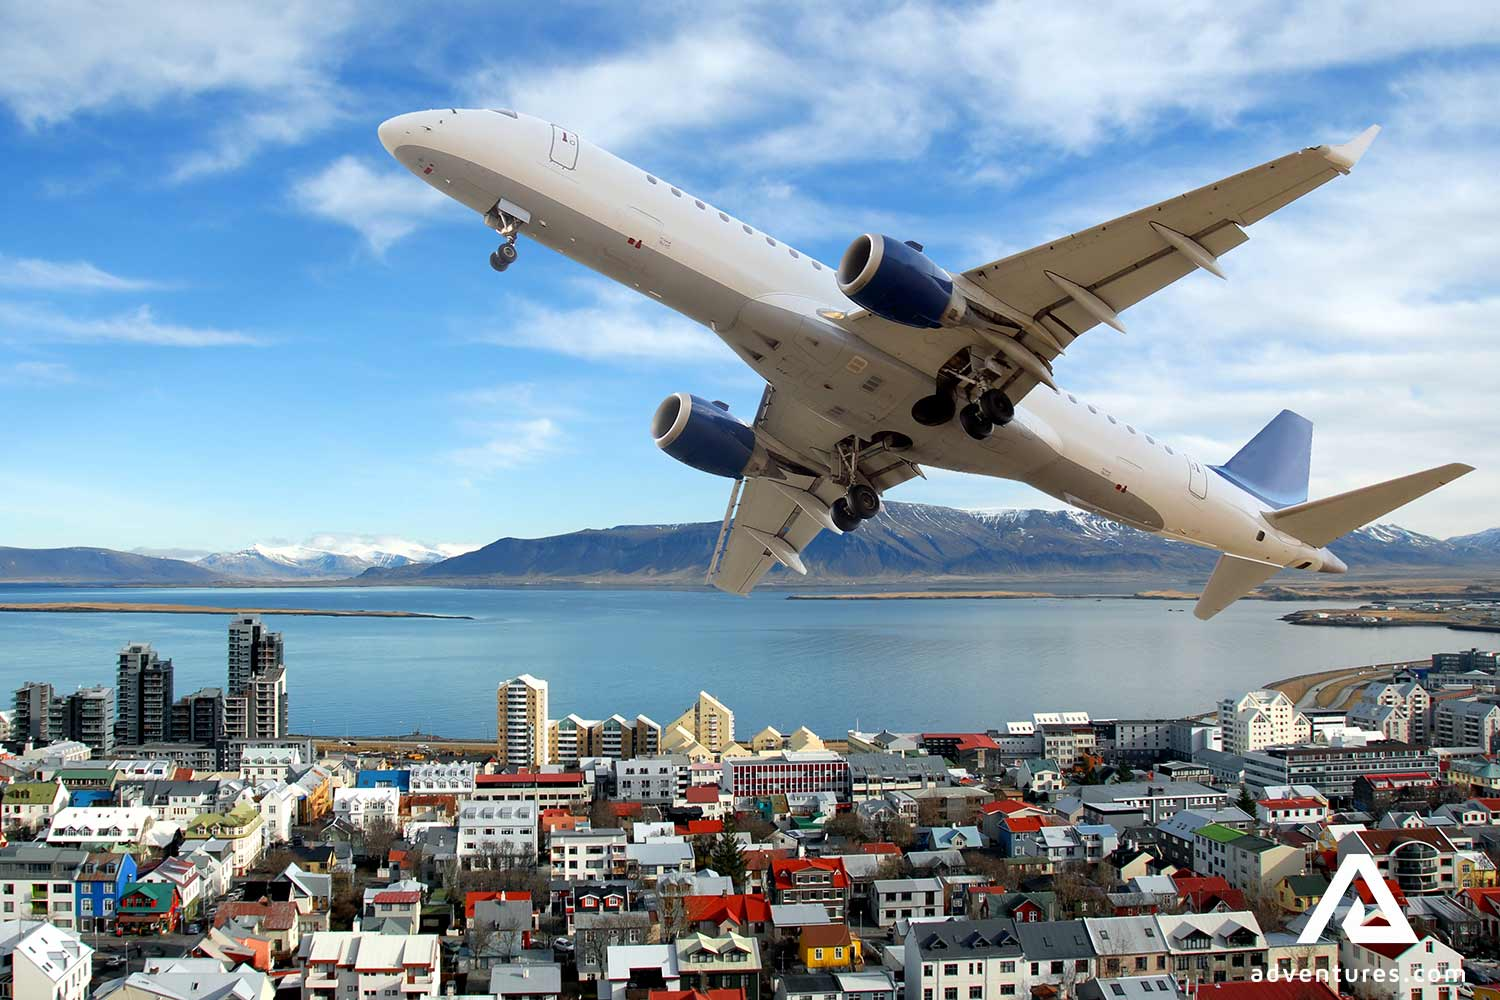 Iceland Airports & Airlines that Fly to Iceland | Extreme ... on united airlines route map, air canada airlines route map, jackson airlines route map, copa airlines colombia route map, south america airlines route map, mountain west airlines route map, austrian airlines route map, northwest airlines route map, american airlines route map, china airlines route map, america west airlines route map, atlantic coast pipeline route map, atlantic coastal airlines route map, national airlines route map, japan airlines route map, great lakes airlines route map, western airlines route map, central airlines route map, atlantic coast beach map, saudi arabian airlines route map,